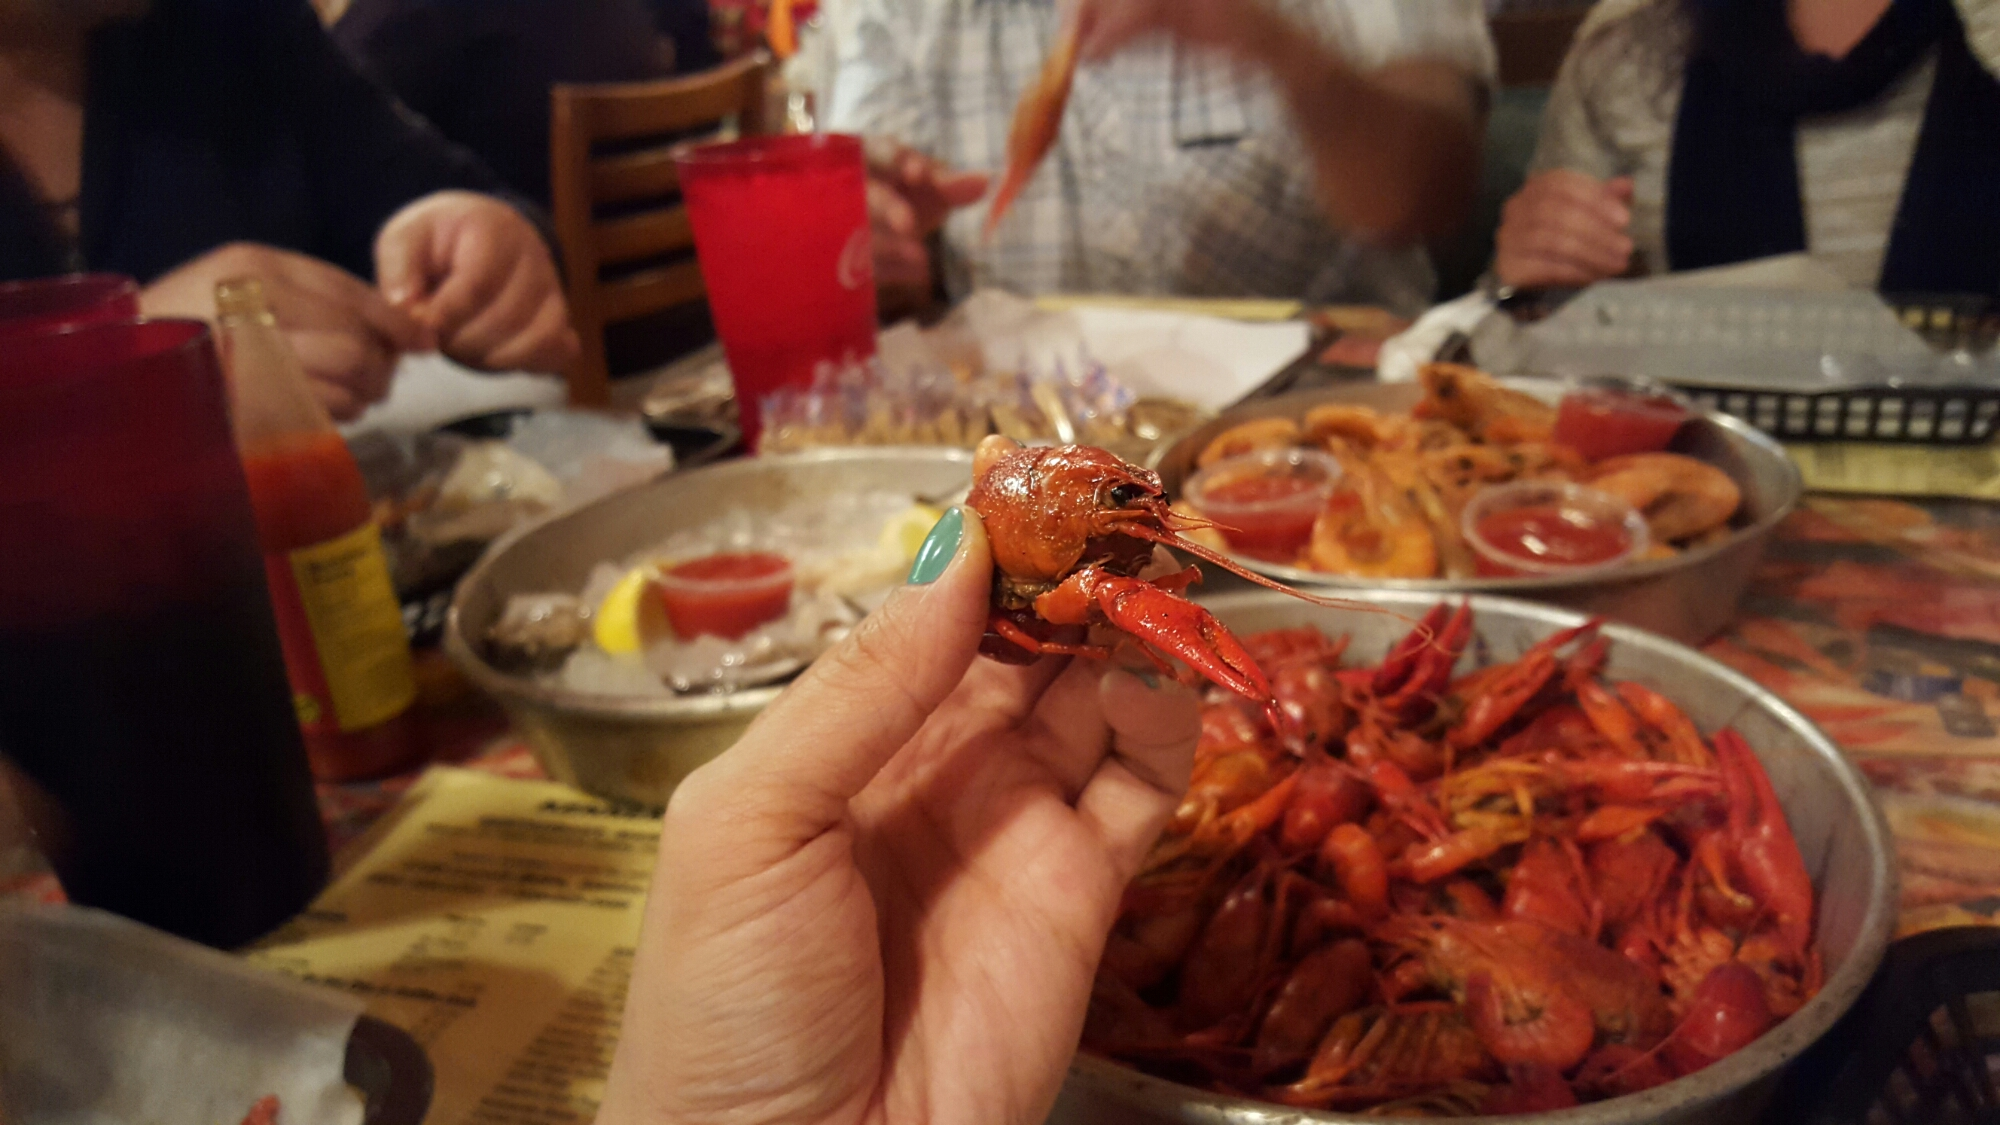 How To Eat Soft Shell Crawfish By Hans Aanrud Crawfish Tastes Similar To  Lobster, But Less Chewy And Tough The Crawfish Is Boiled In